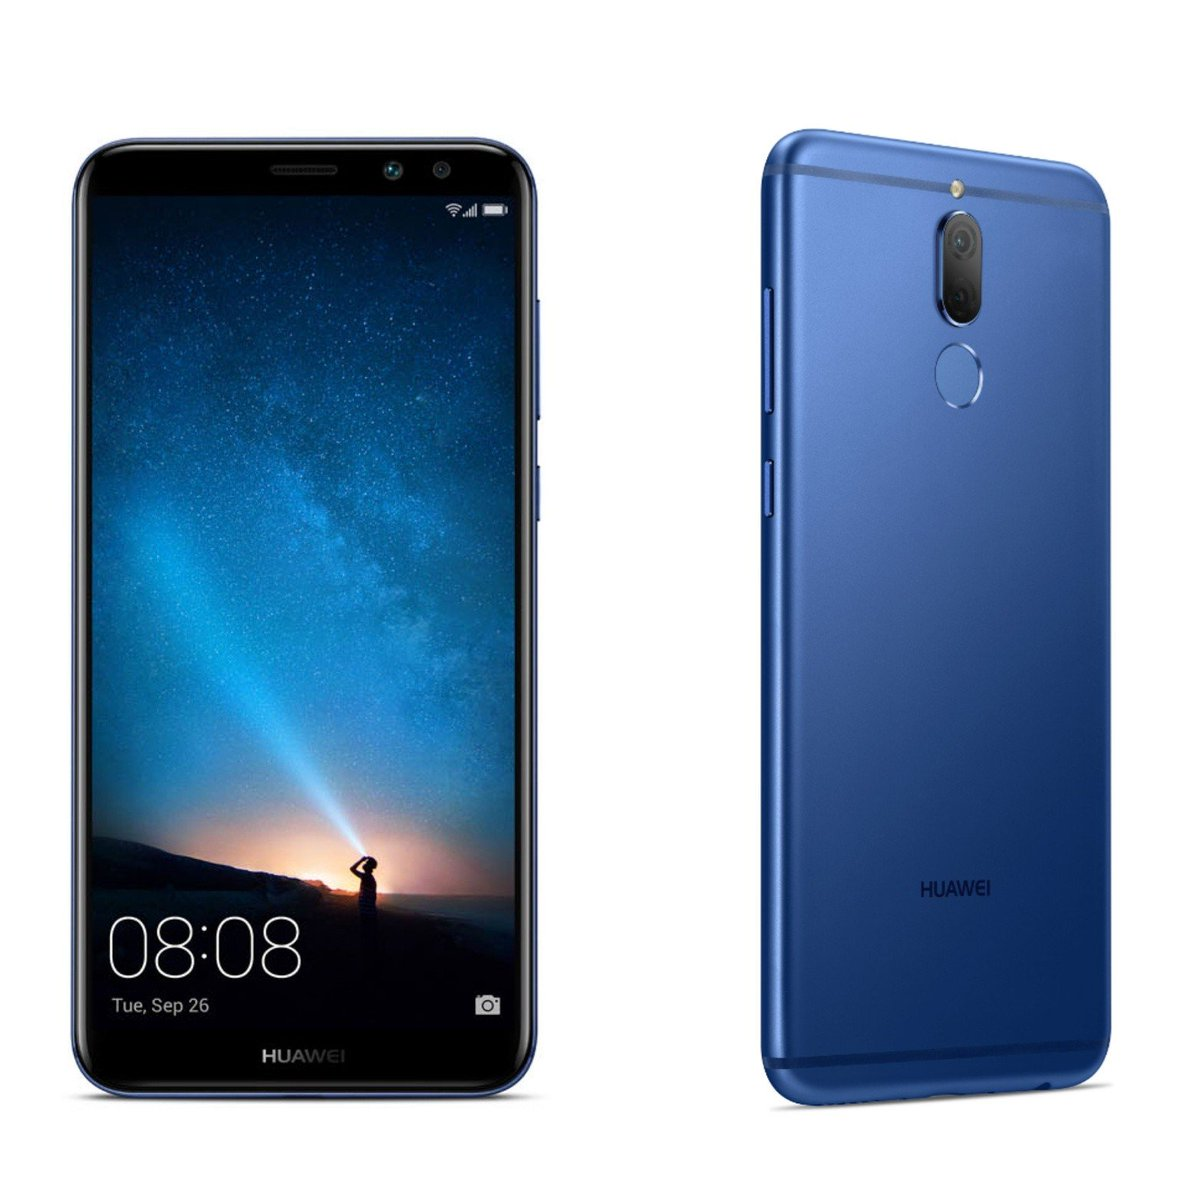 Andro Dollar On Twitter Who Likes Blue Colour Smartphones The Huaweinova2i Is Gonna Launch In An Awesome New Aurora Blue Color Starting From The 12th Of December Oooo Haveapointofview Srilanka Exclusive